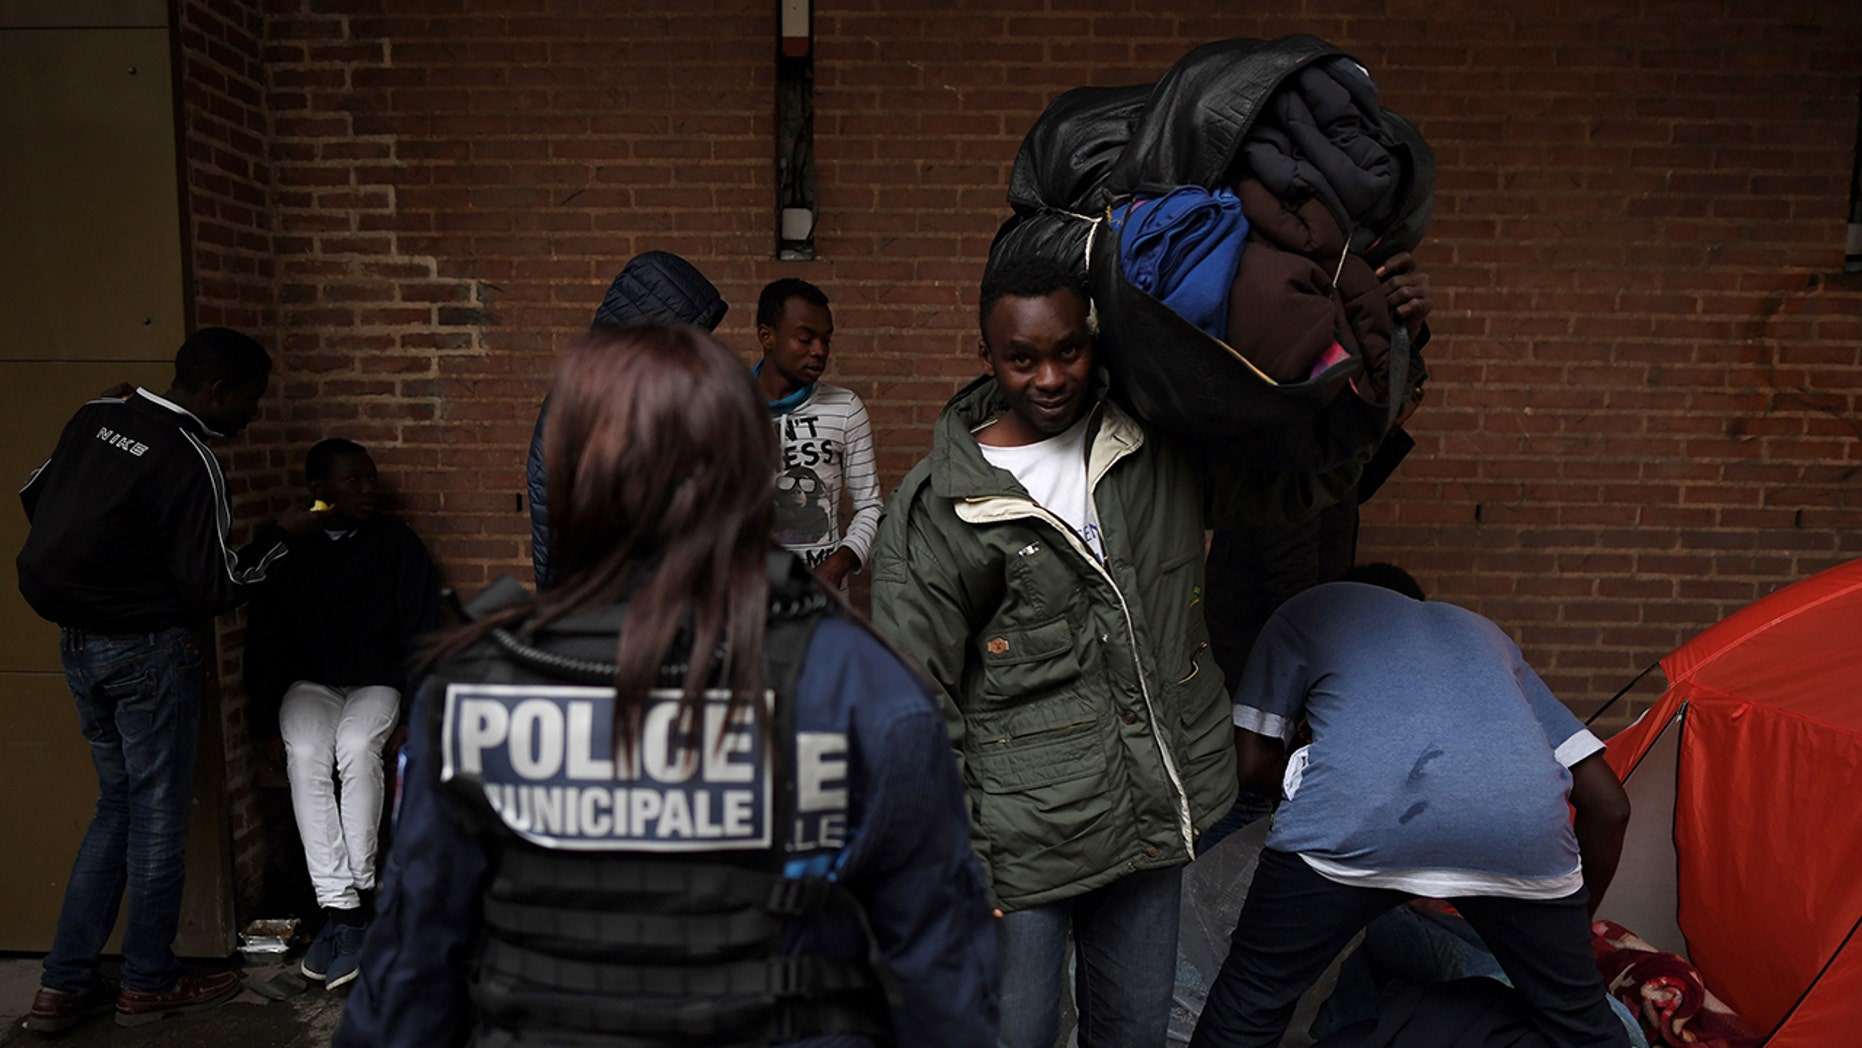 A police officer stands guard as migrants pack up their belongings after sleeping on the floor in Saint-Denis outside Paris on October 11, 2017.